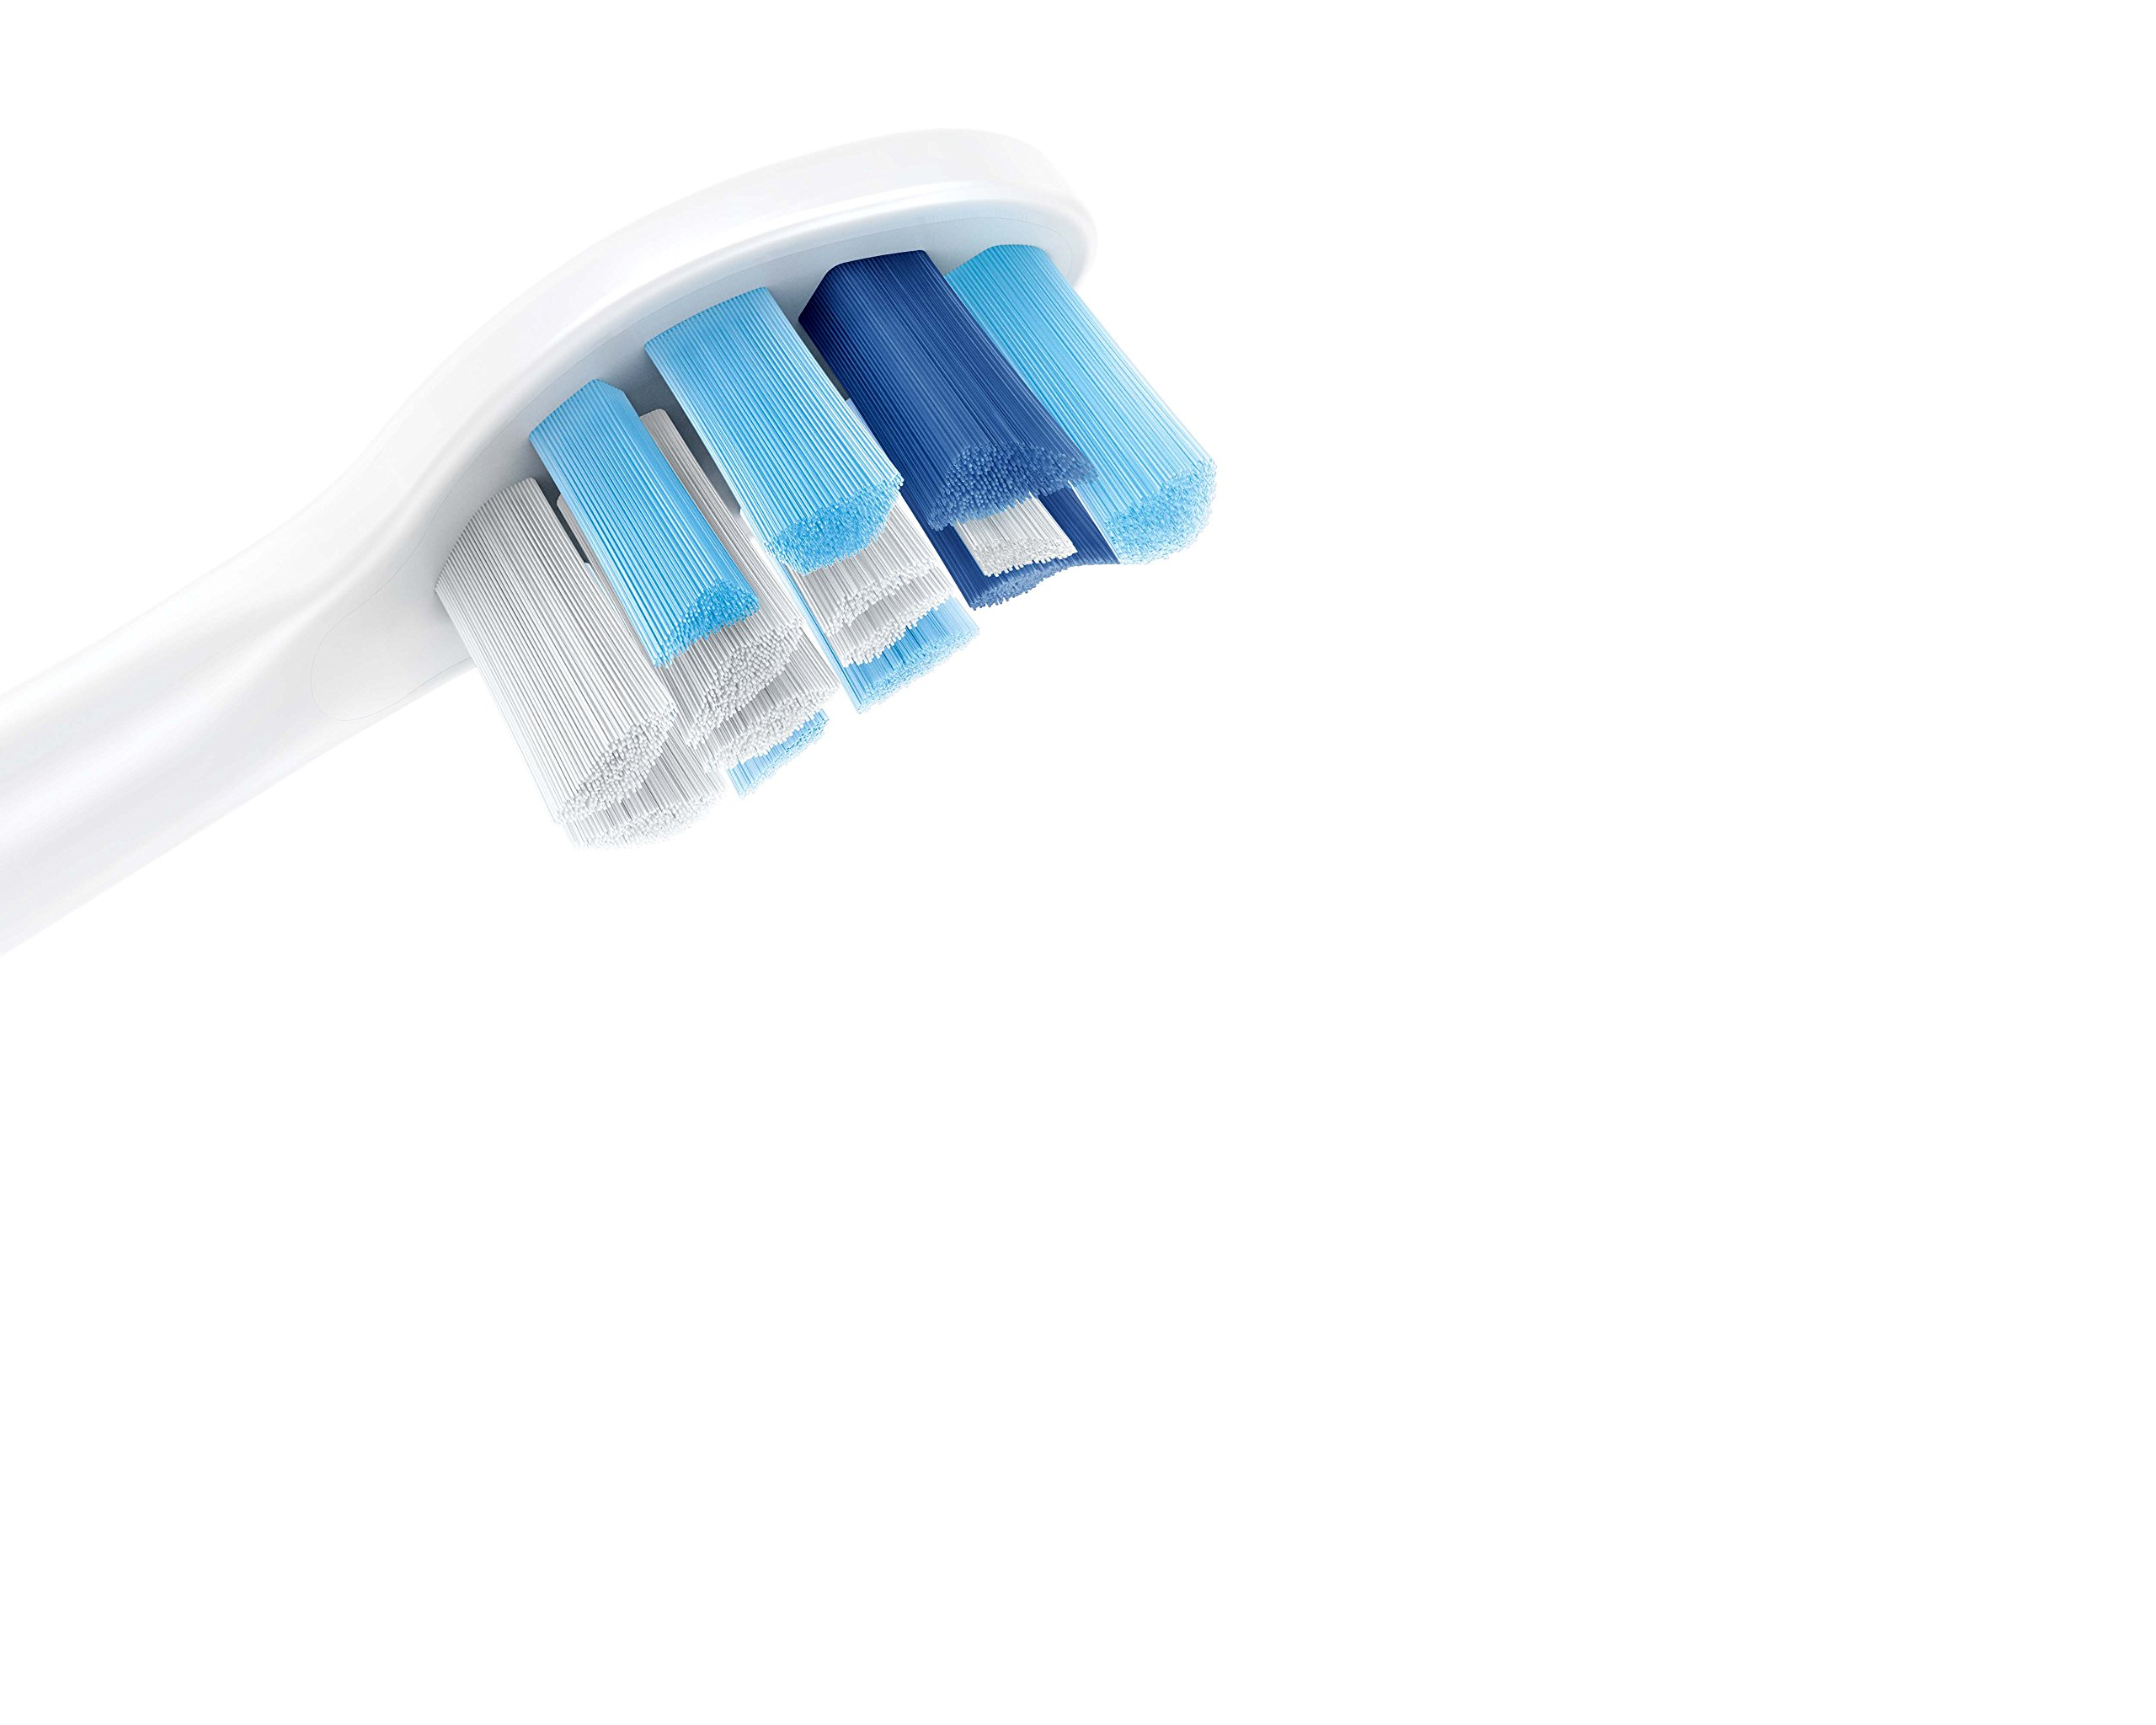 Philips Sonicare Pro Results Gum Health Replacement Toothbrush Heads for Sonicare Electric Rechargeable Toothbrush, FFP, HX9033/30, 3-pack